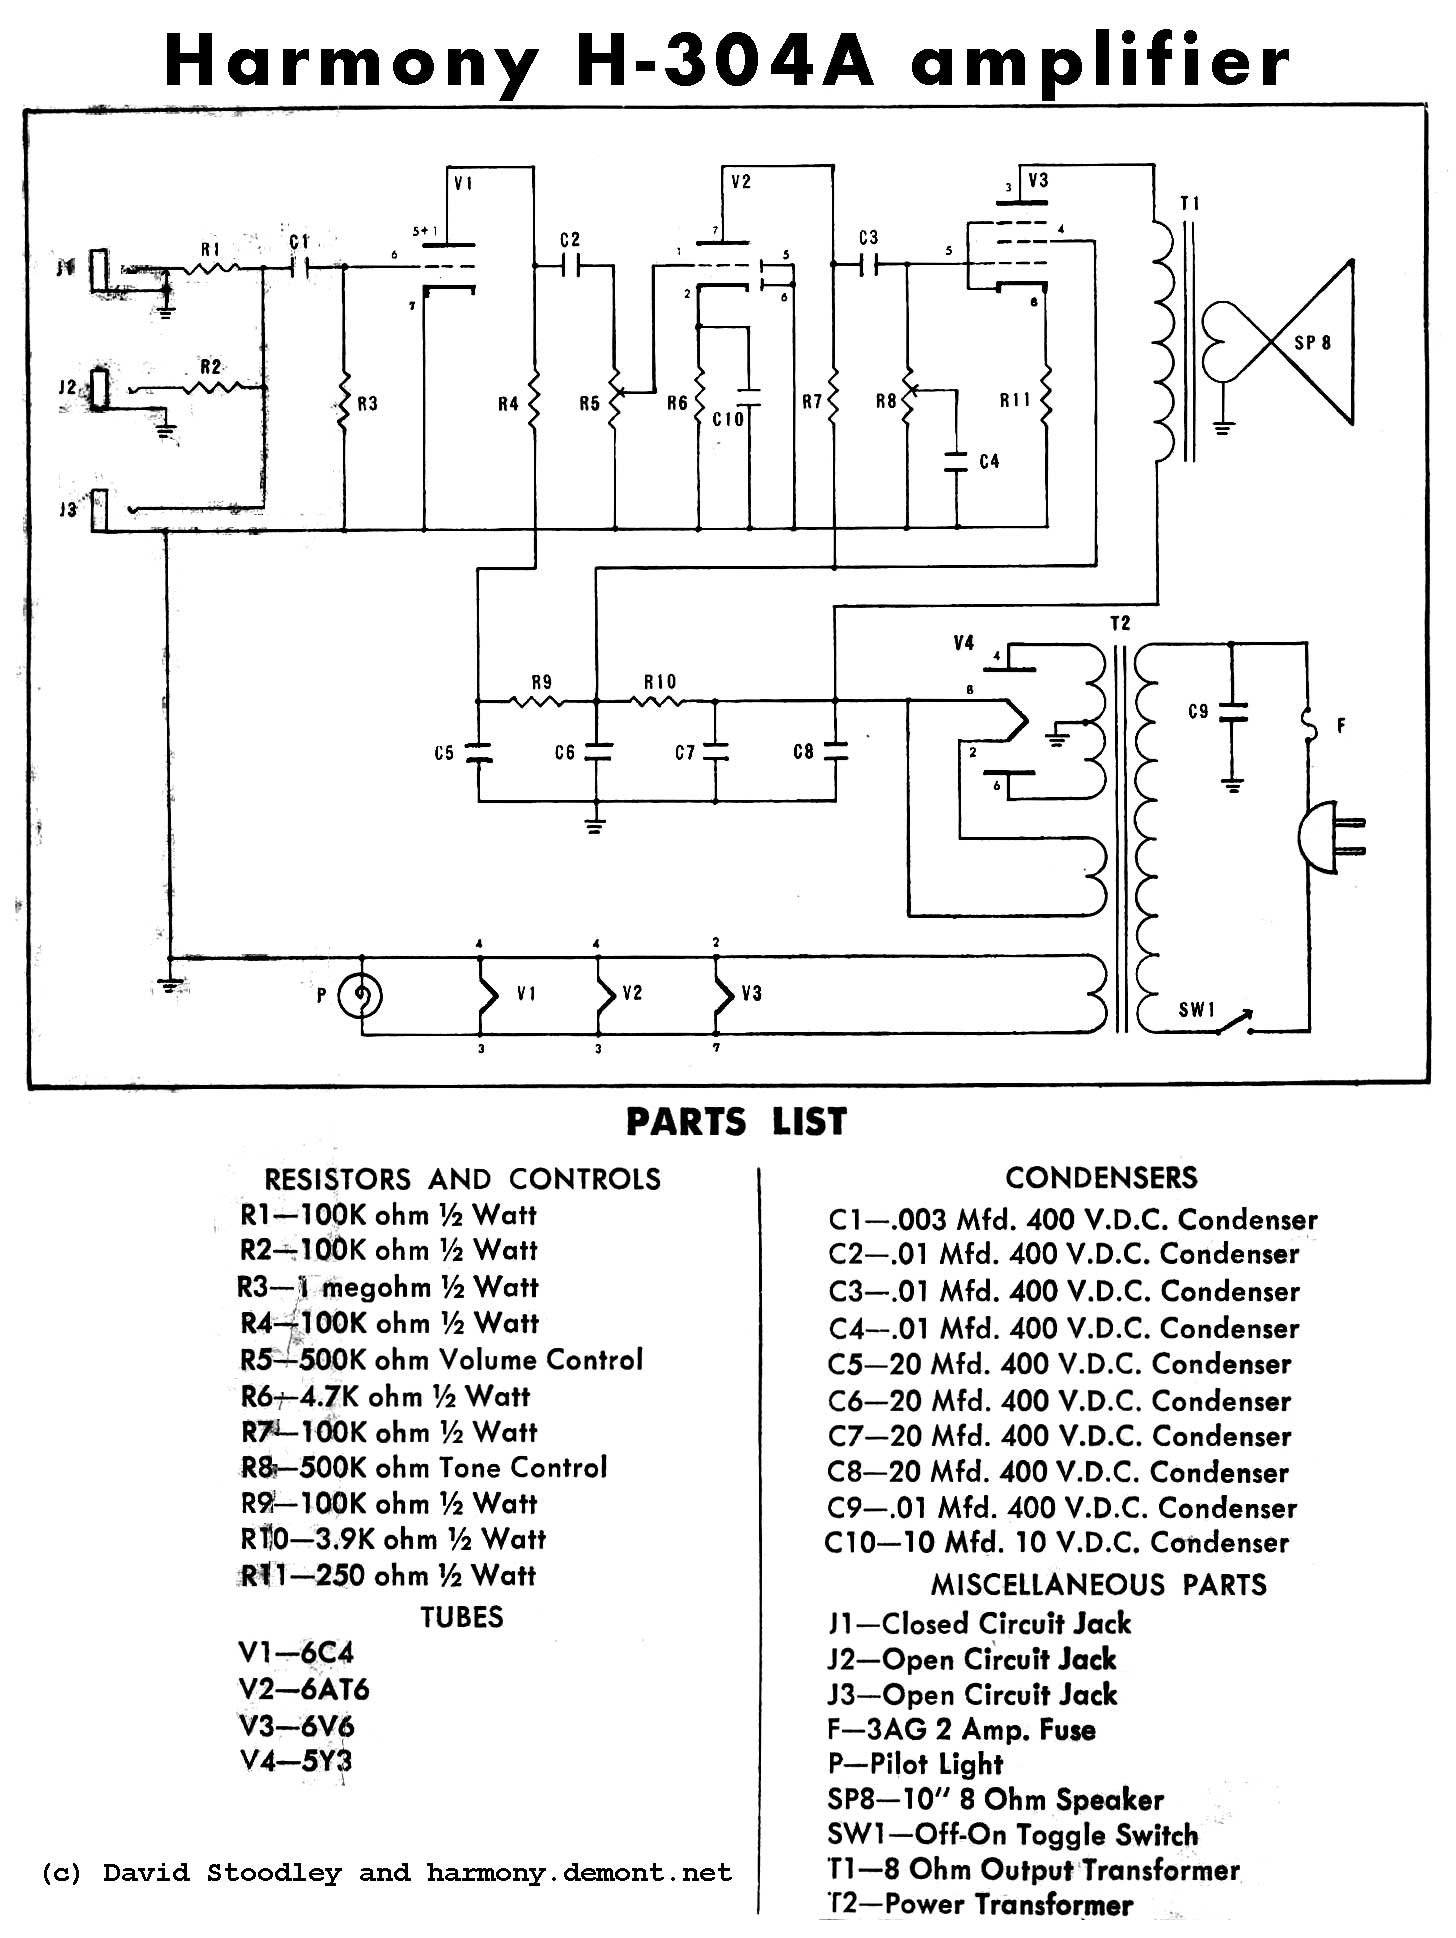 15 amp schematic wiring diagram old harmony h304a amplifier | telecaster guitar forum